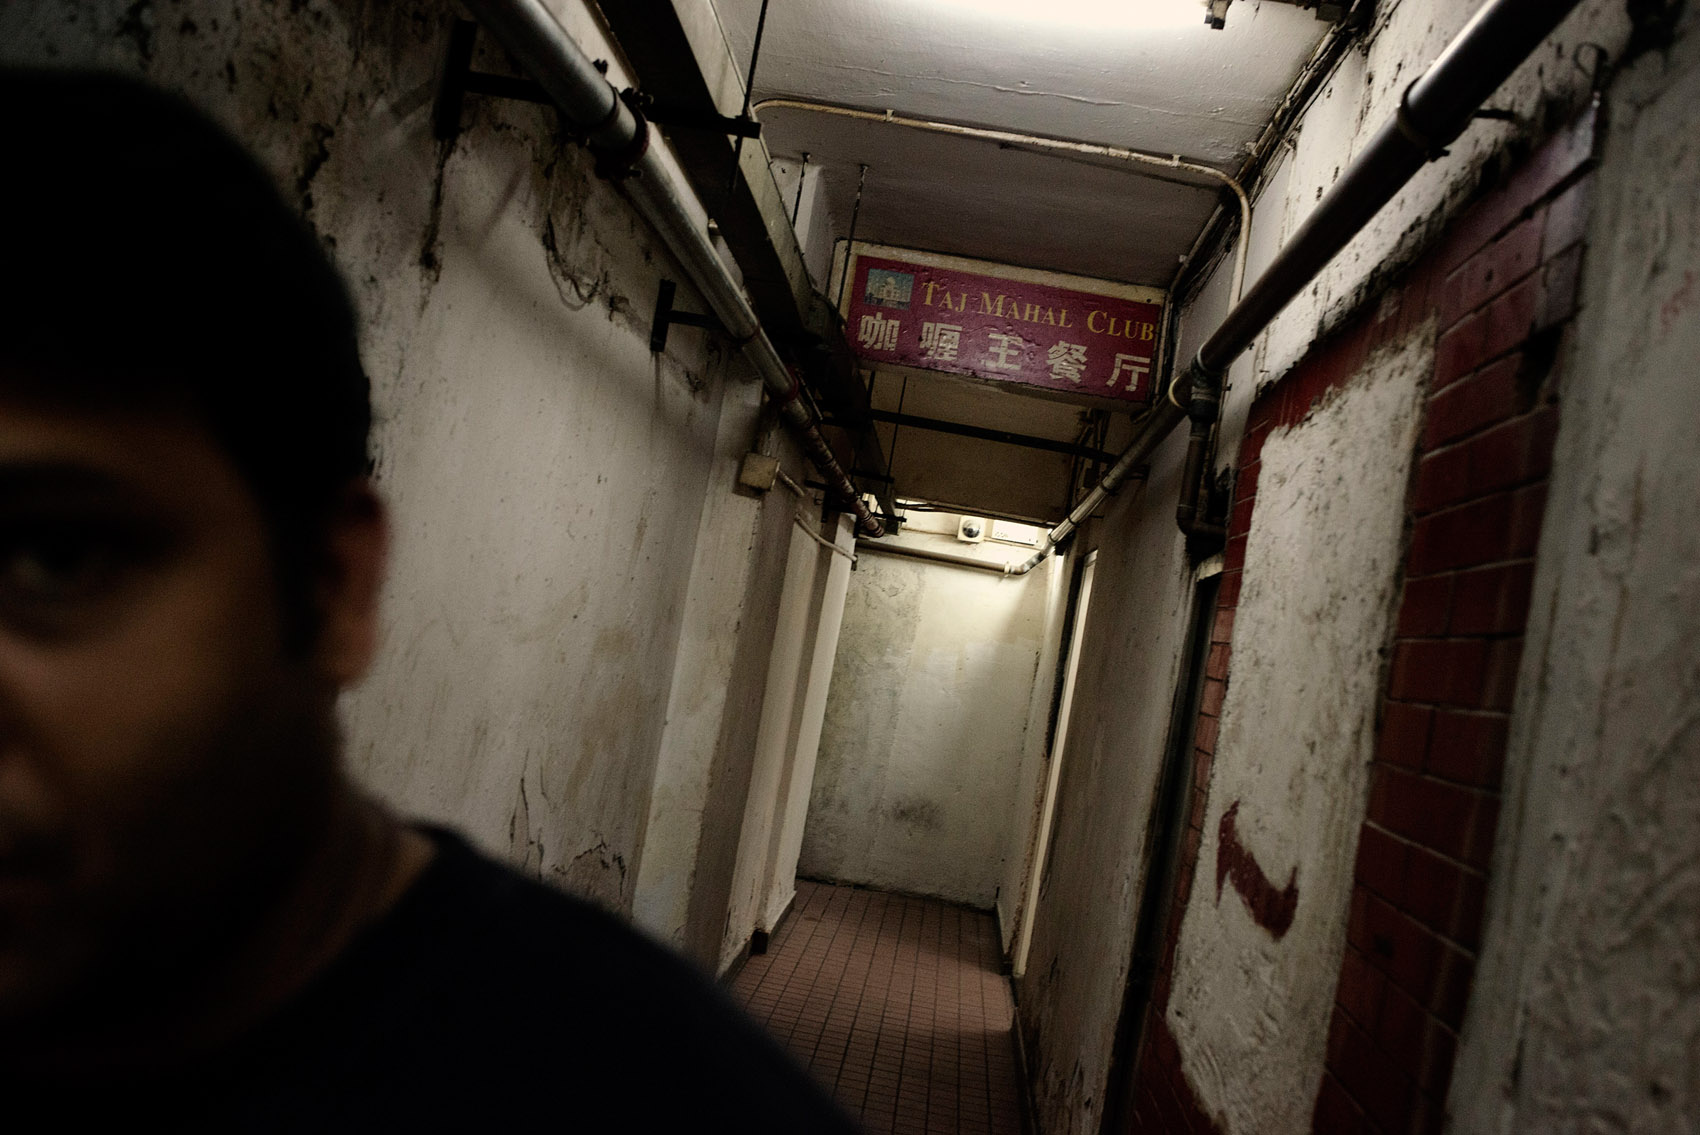 In a corridor of the Chungking Mansions leading to the Indian restaurant, the Taj Mahal Club..